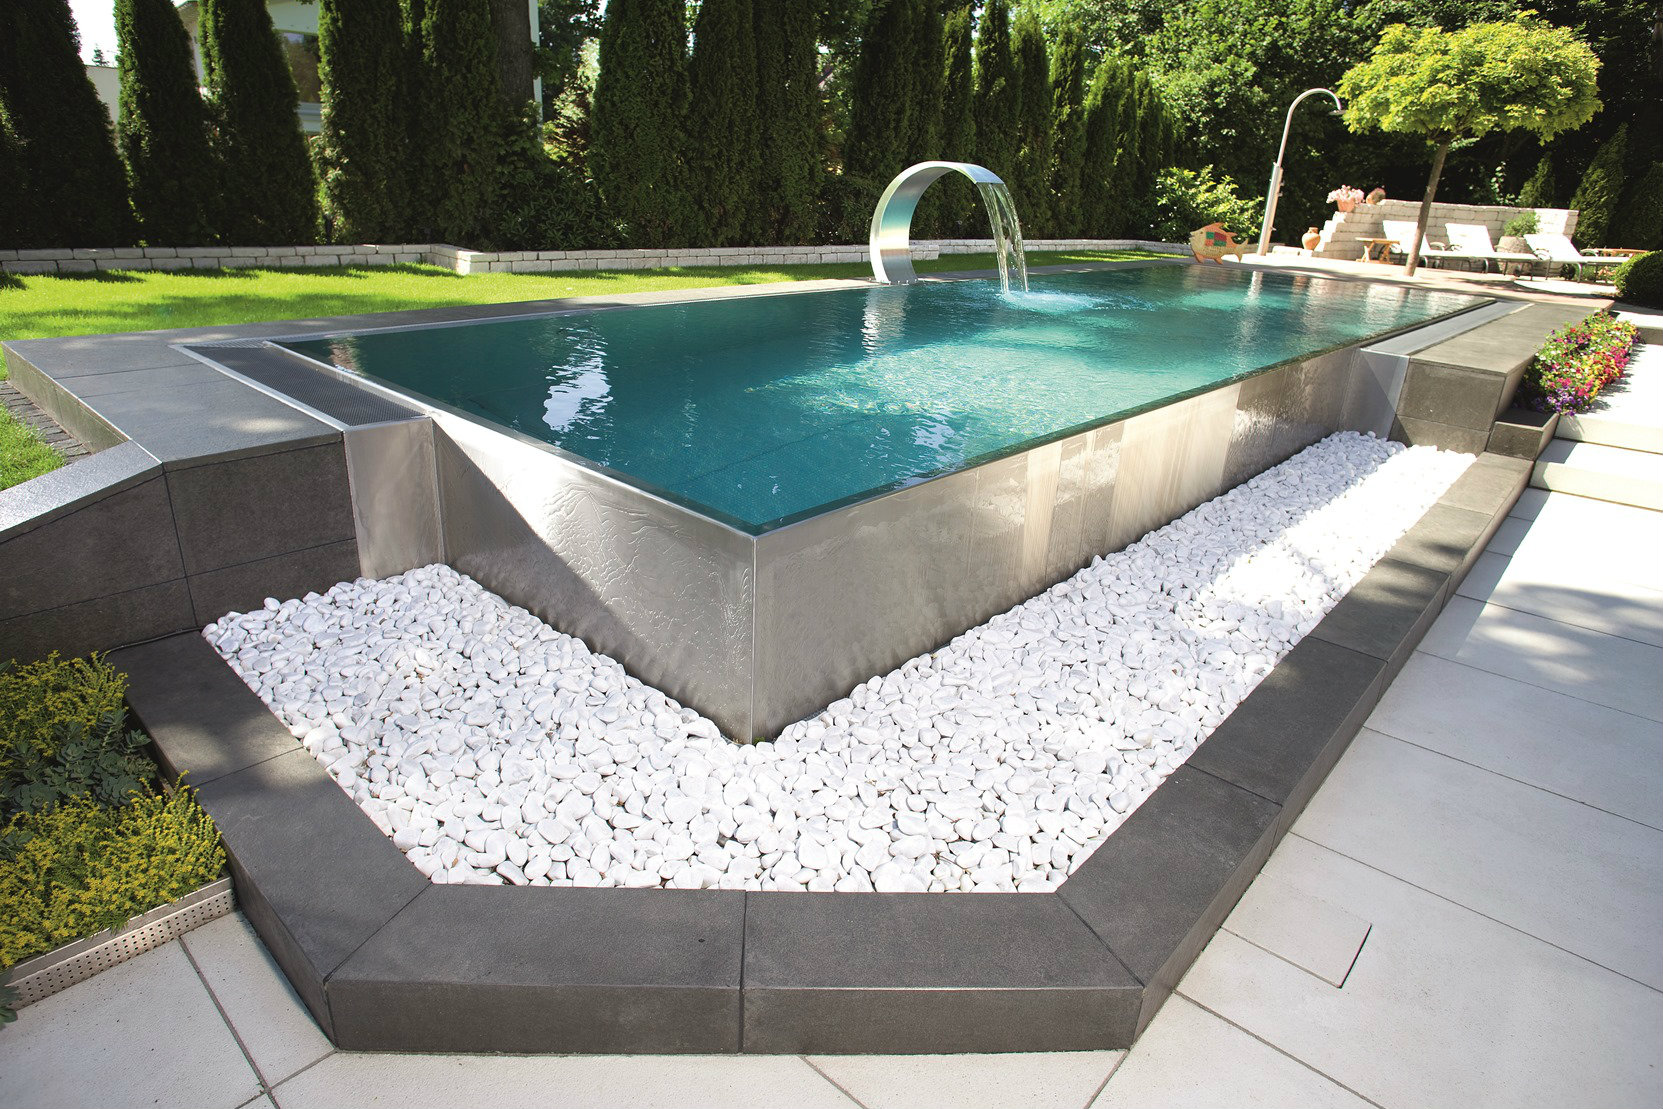 European Stainless Steel Pool Manufacturer Berndorf Enters